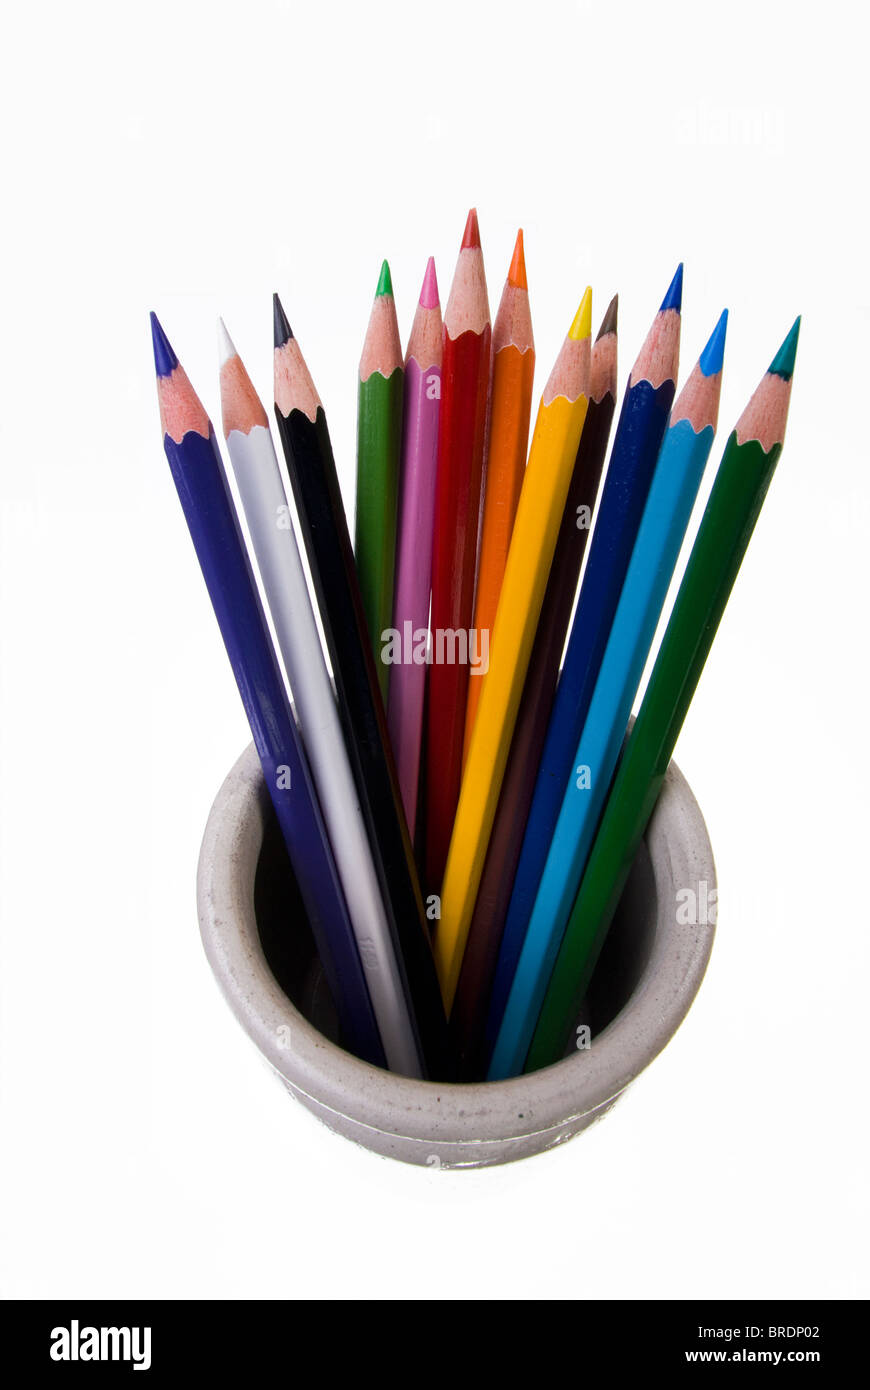 Coloured pencils standing in a pot. - Stock Image